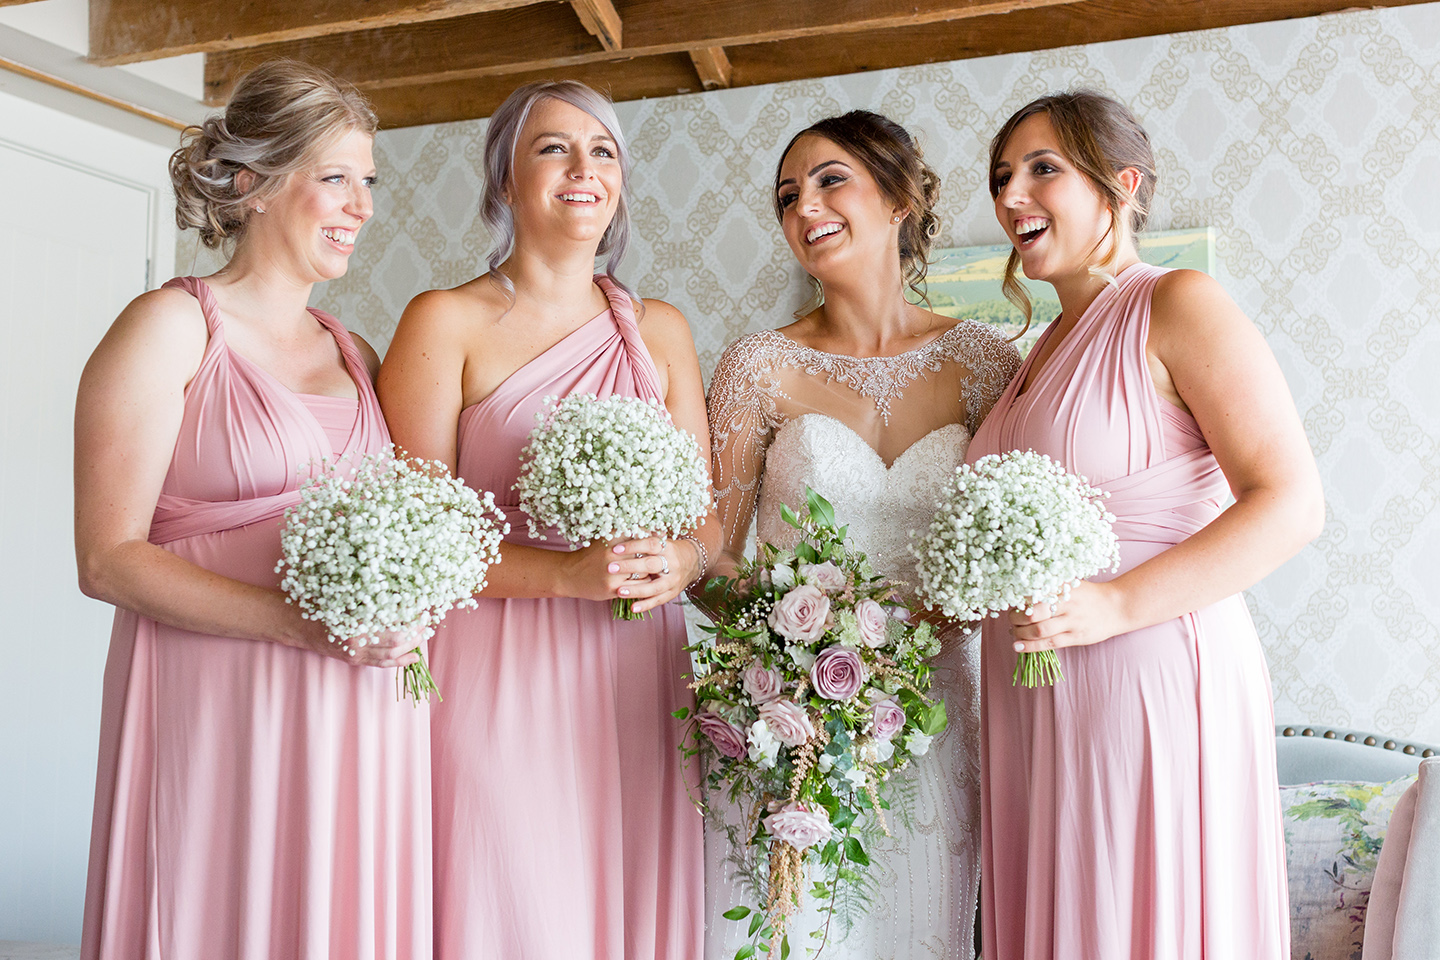 Bridesmaids wore pink multiway bridesmaid dresses for this summer wedding at Bassmead Manor Barns